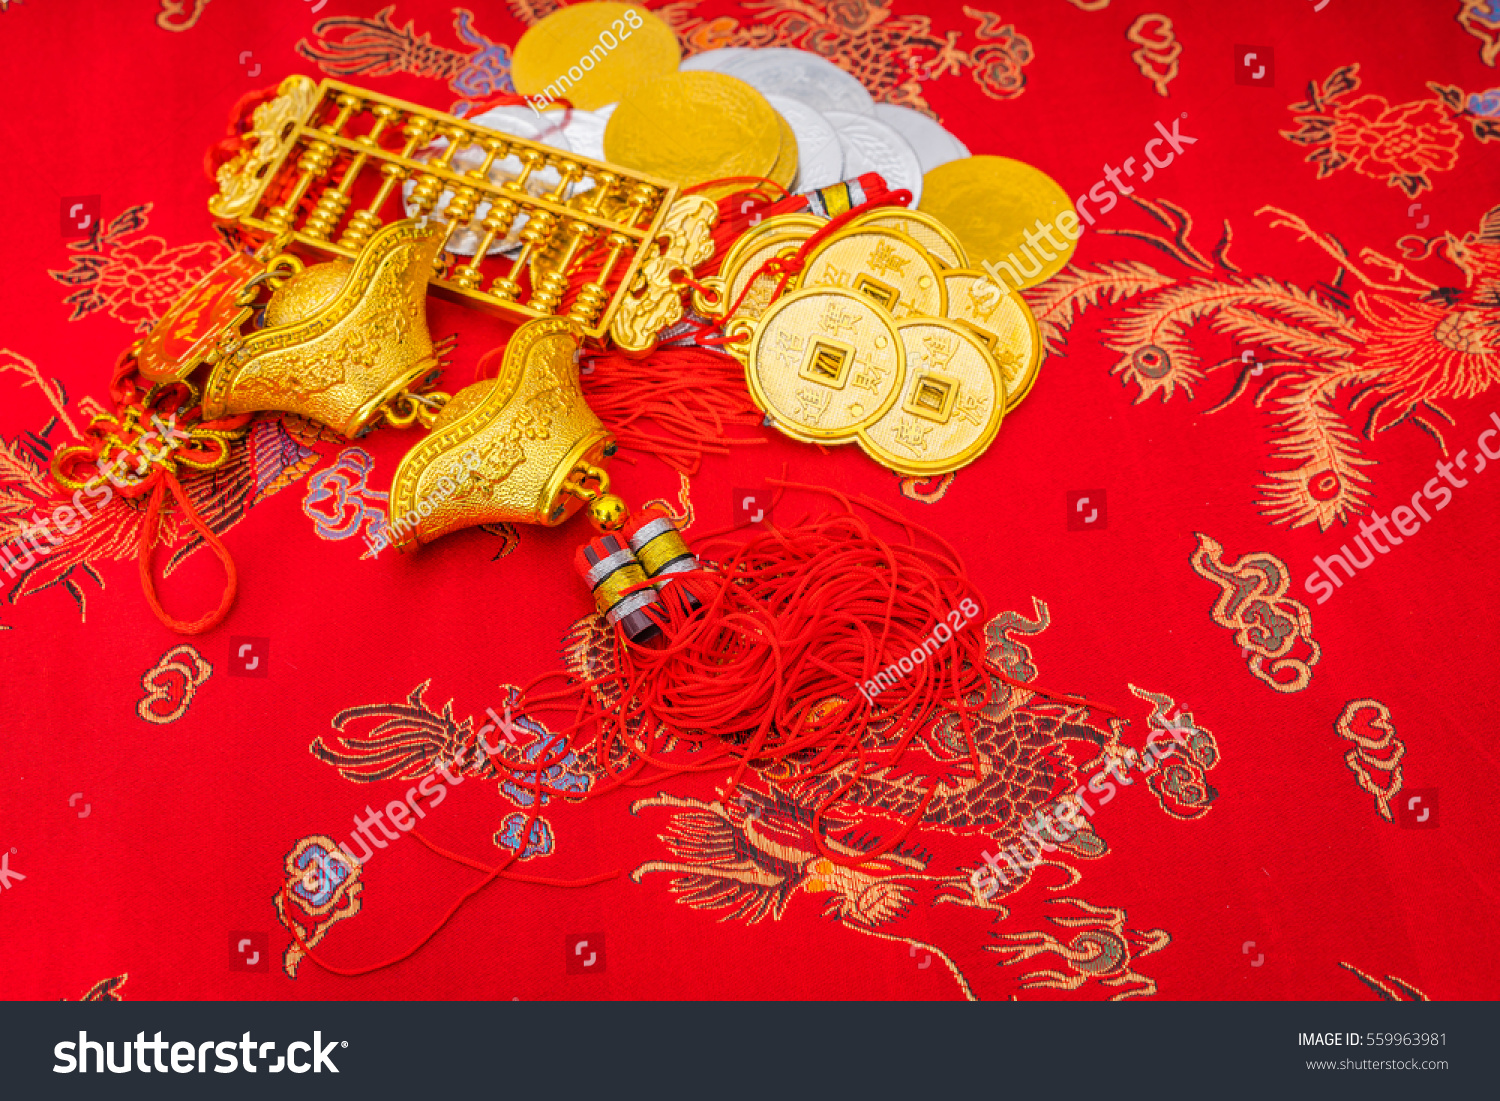 chinese new year decoration on red stock photo 559963981 shutterstock. Black Bedroom Furniture Sets. Home Design Ideas